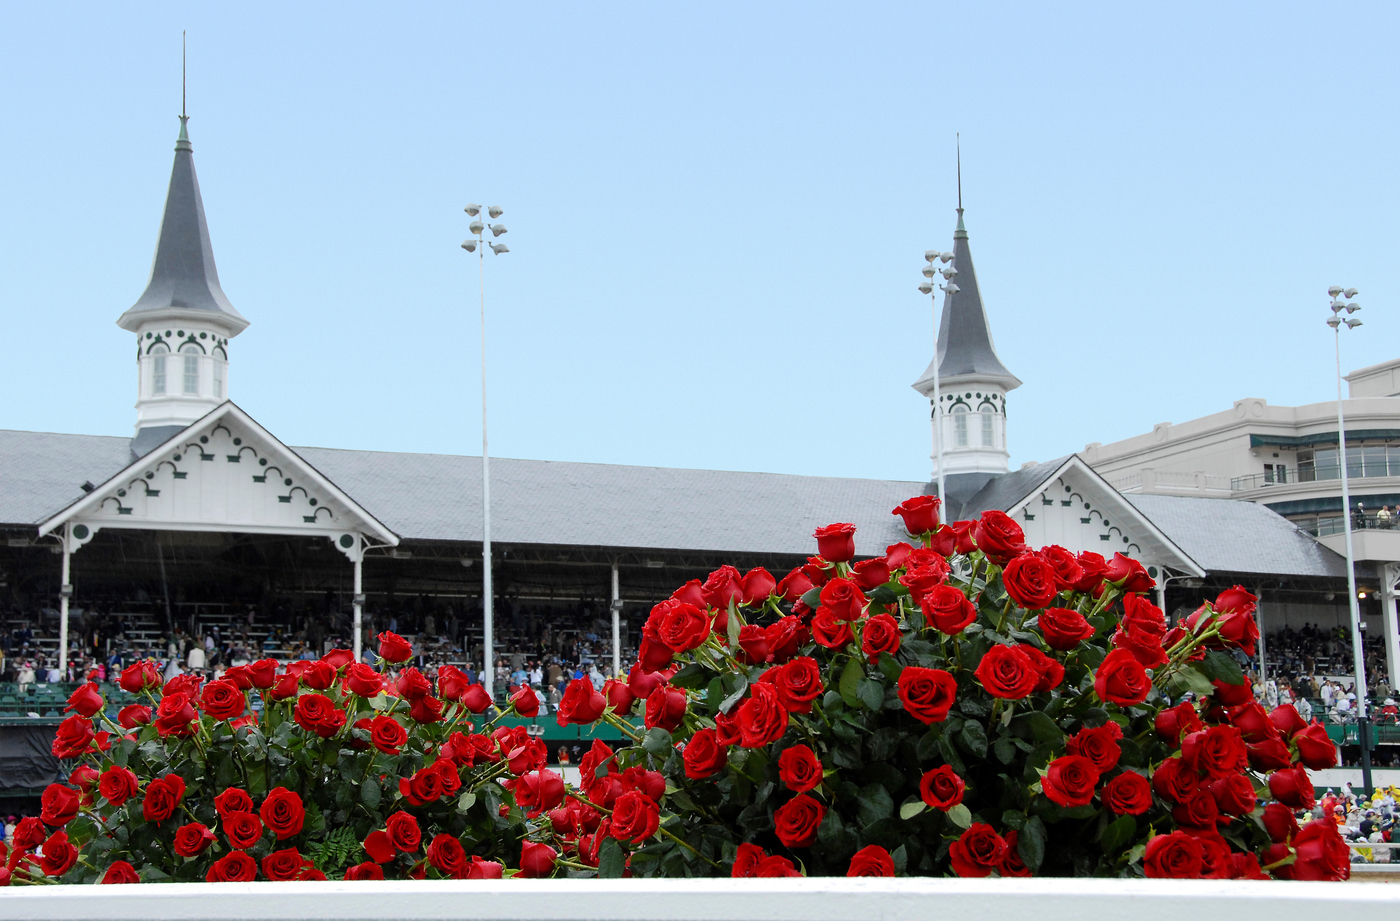 Longines Flat Racing Event: THE SWISS WATCH BRAND LONGINES PARTNERS WITH CHURCHILL DOWNS INCORPORATED AS 'OFFICIAL TIMEKEEPER' OF KENTUCKY DERBY®, HOME TRACK 3